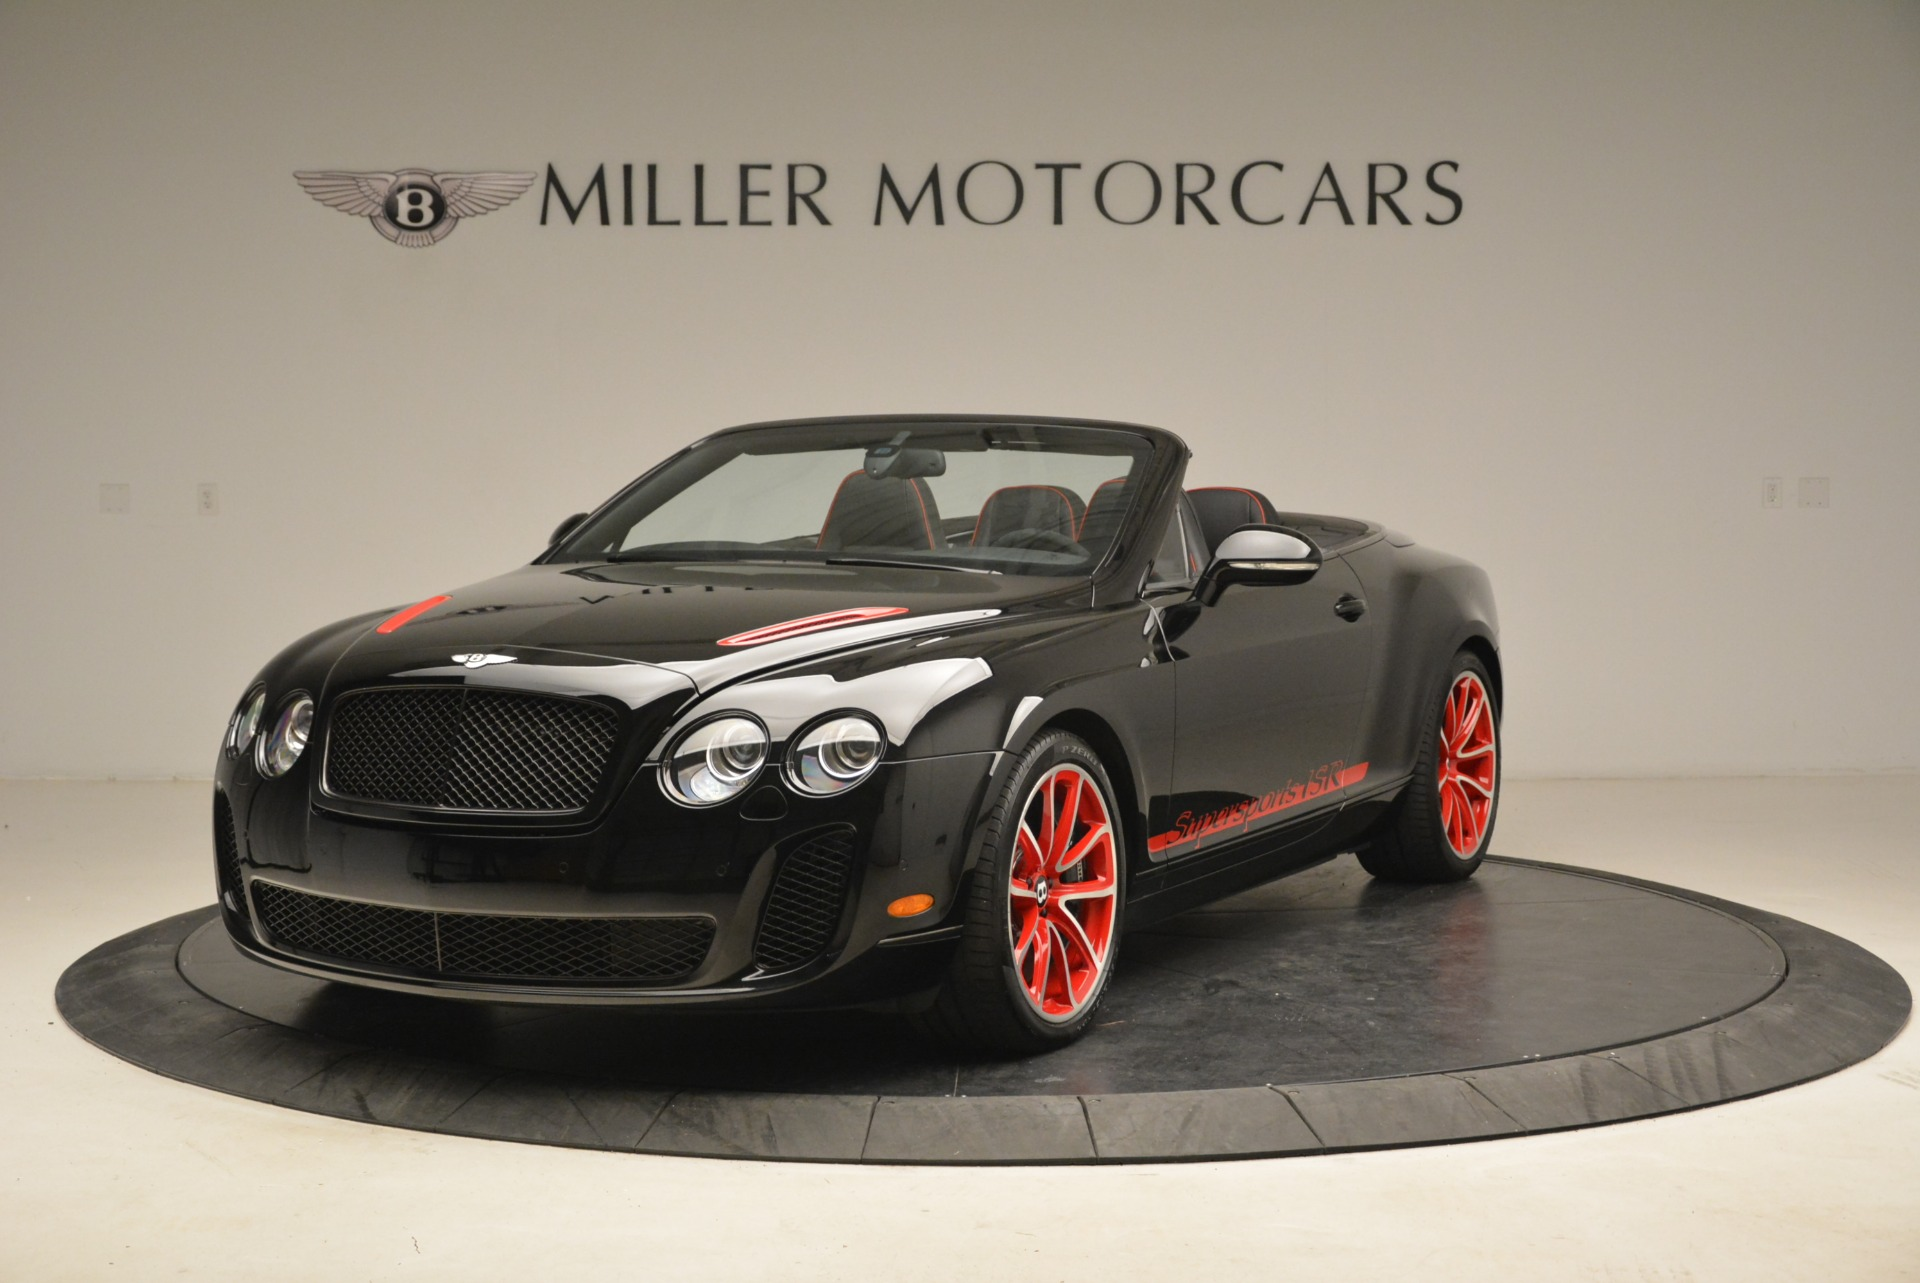 Used 2013 Bentley Continental GT Supersports Convertible ISR for sale Sold at McLaren Greenwich in Greenwich CT 06830 1